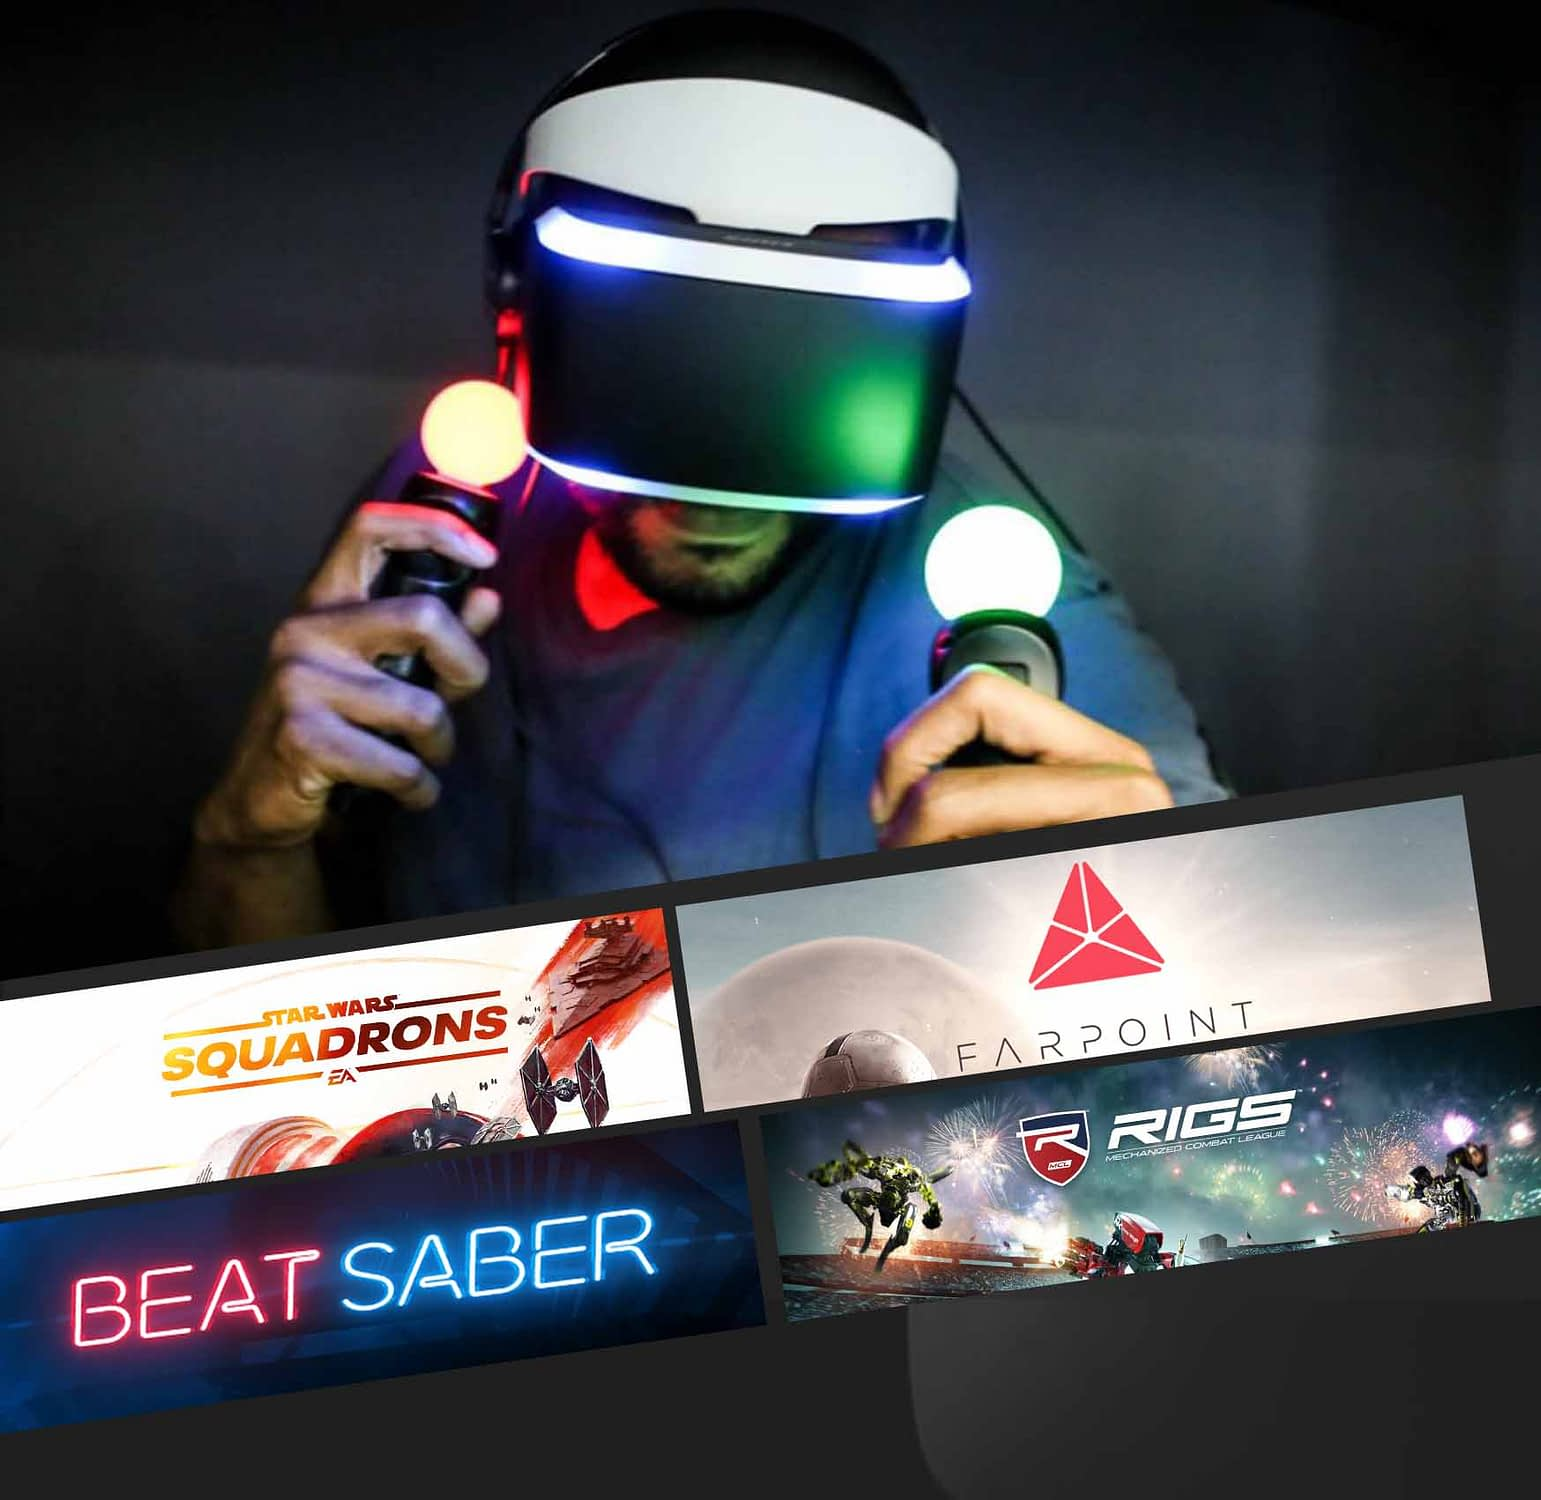 If you're not familiar with VR headsets, you might require a little assistance. Our well-trained expert rentals can help alleviate you of the stress if you feel you need help setting up the hardware.We can make renting the PlayStation VR easy. Permit our experts to see you through the process.